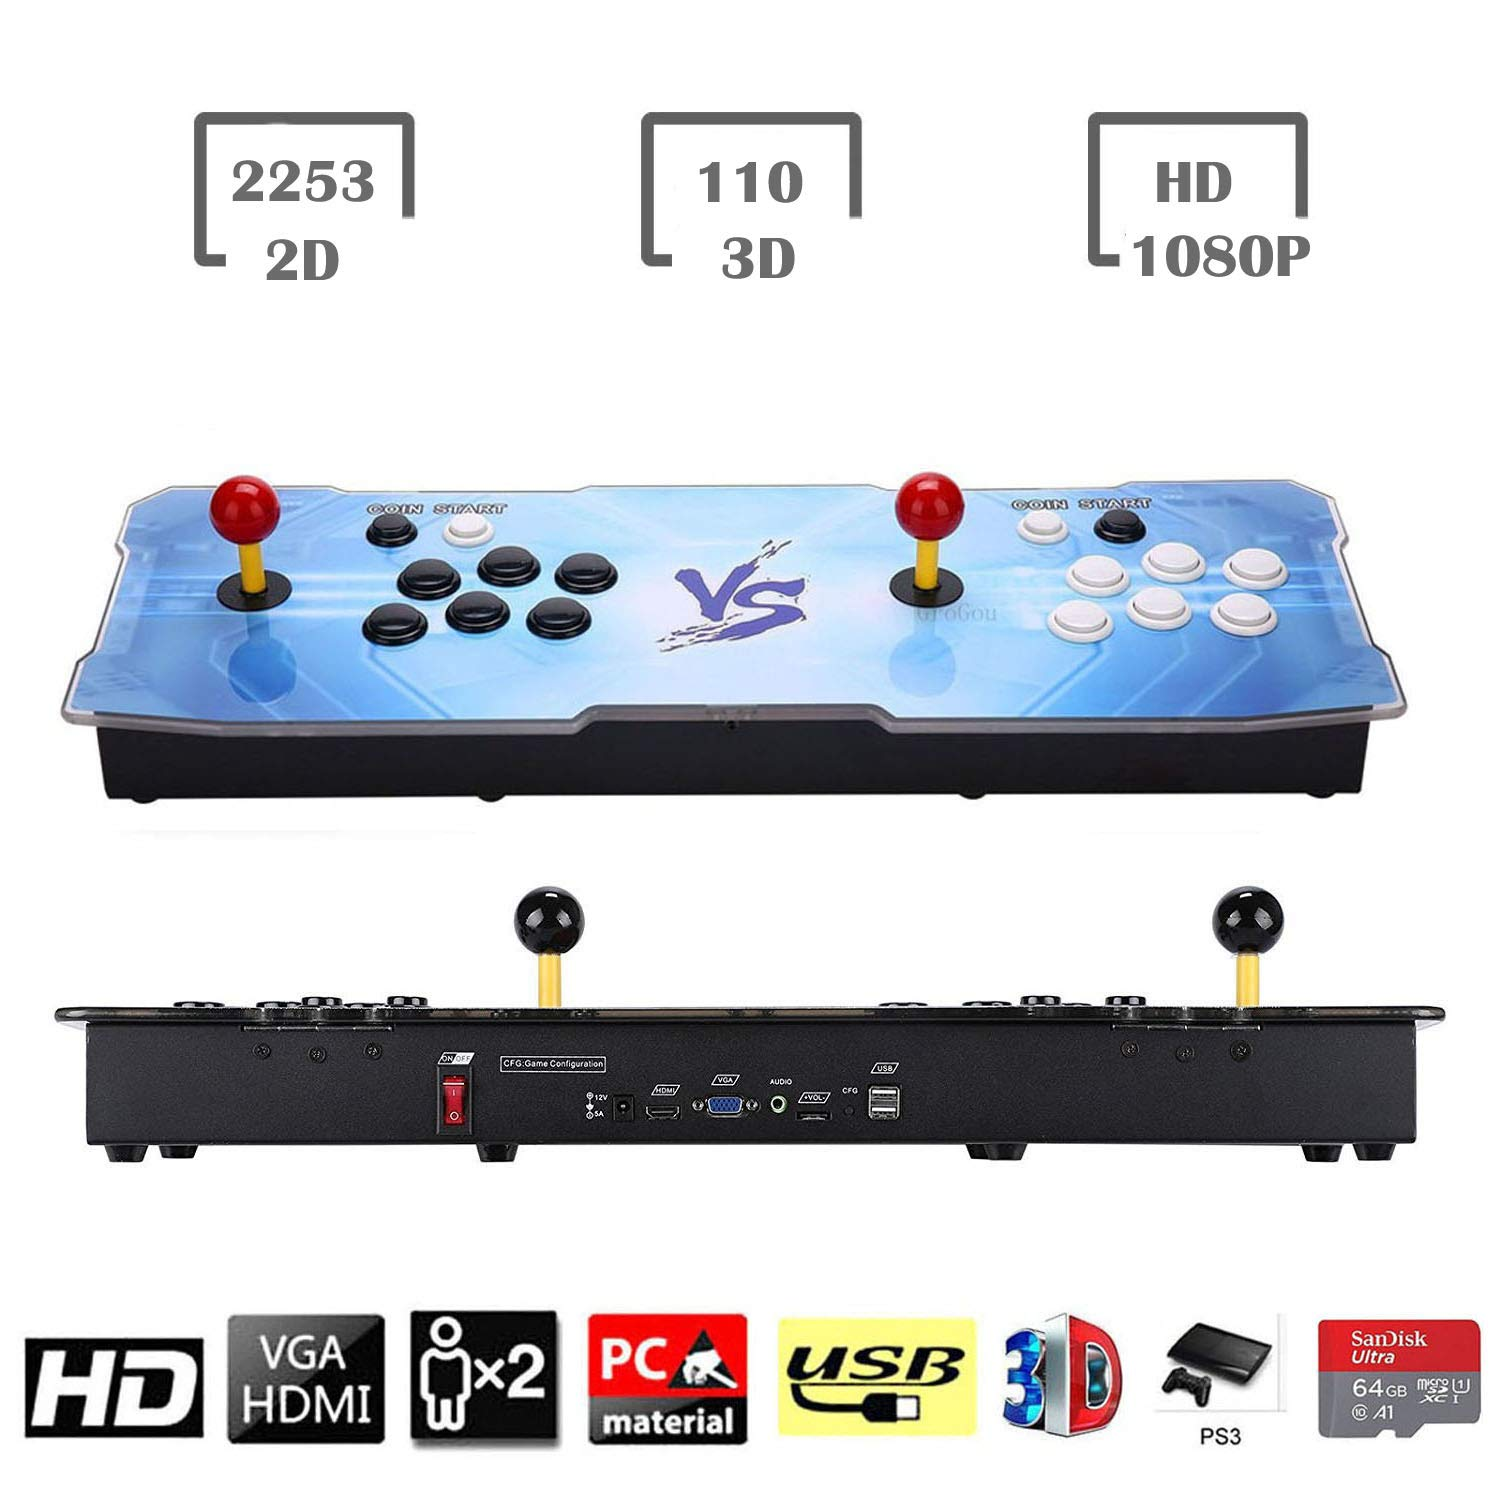 HAAMIIQII 3D Pandora Key 2363 Retro Arcade Game Console | Support 3D Games | Add More Games | Full HD (1920x1080) Video | 2 Player Game Controls | Support 4 Players | HDMI/VGA/USB/AUX Audio Output by HAAMIIQII (Image #1)